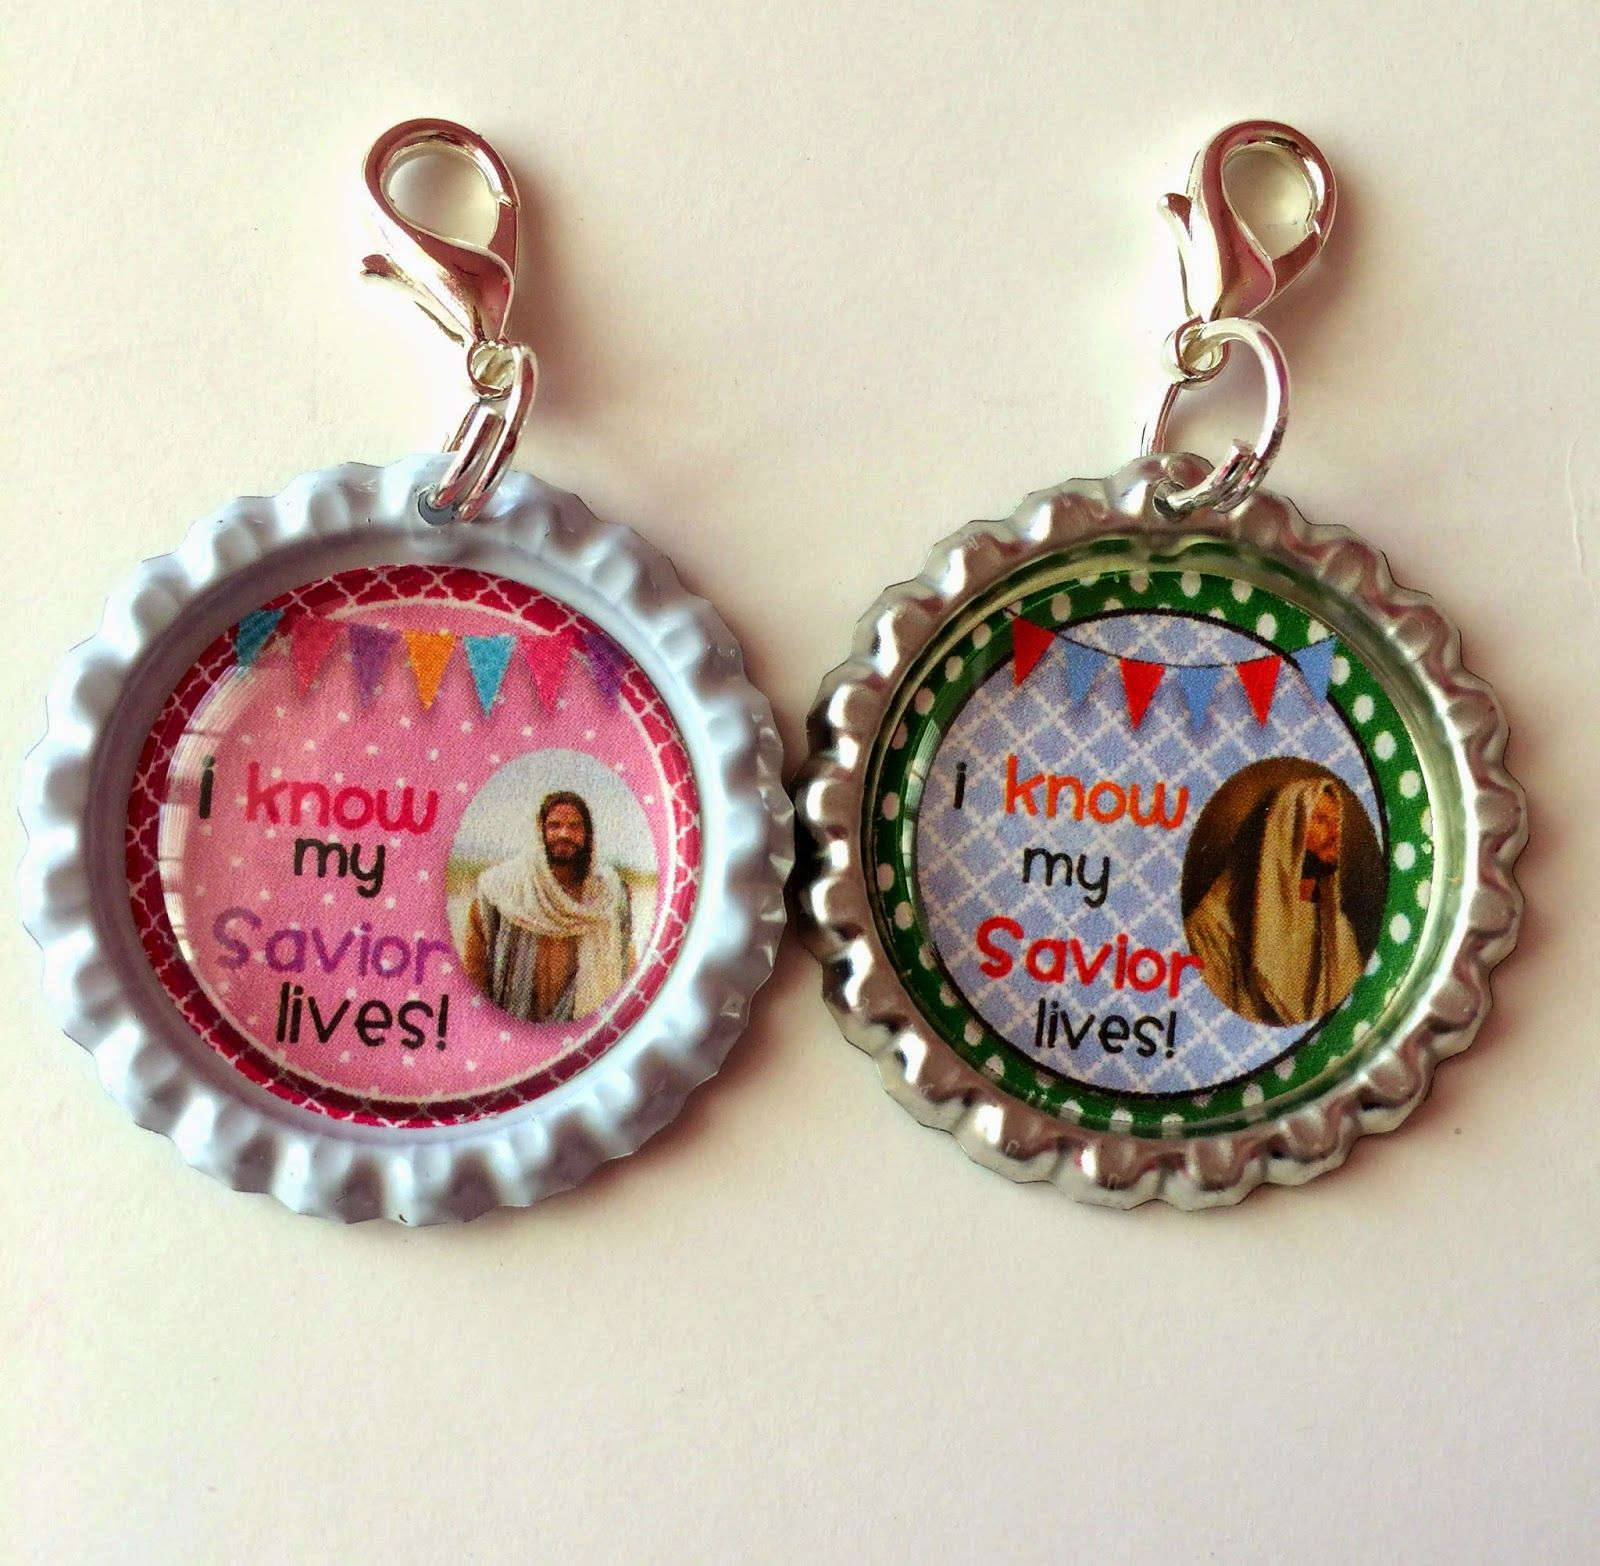 Primary 2015 theme: Scripture Charm pulls for your primary children.